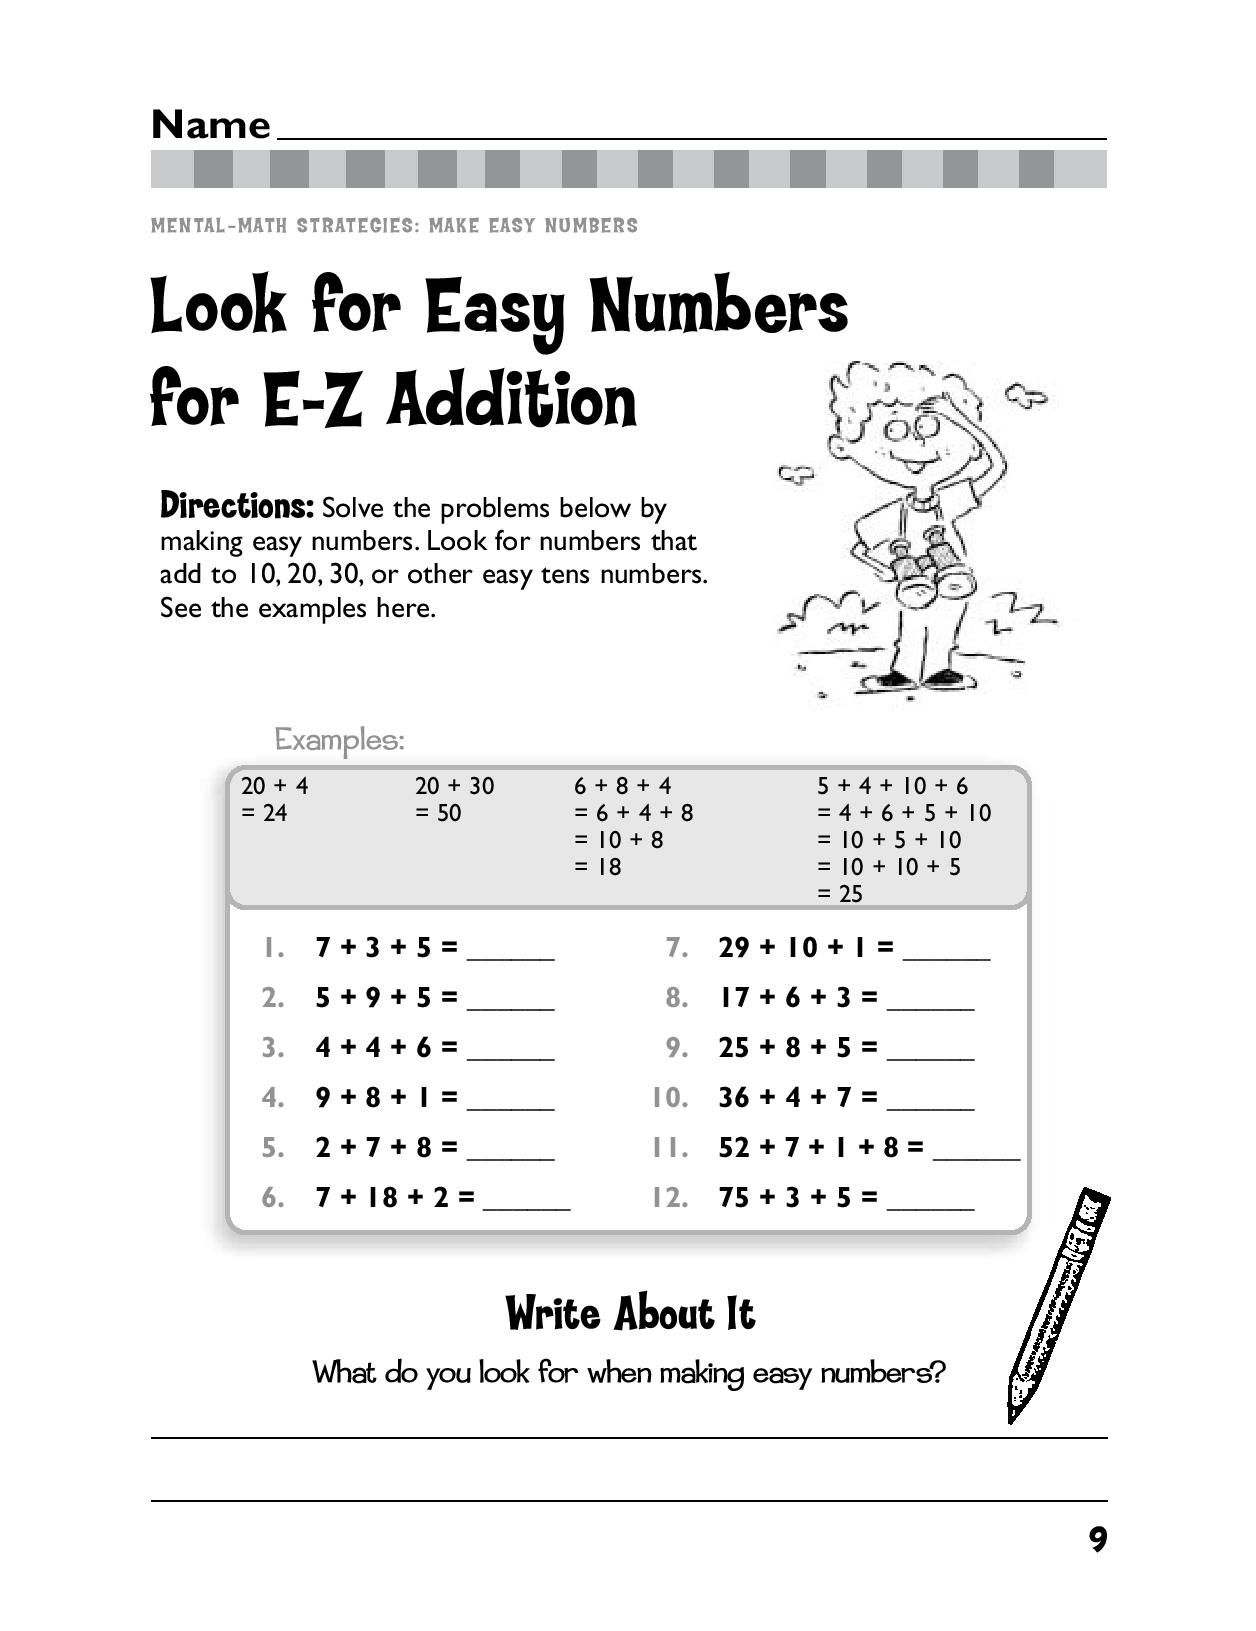 Teaching Your Child To Look For Easy Numbers Will Help